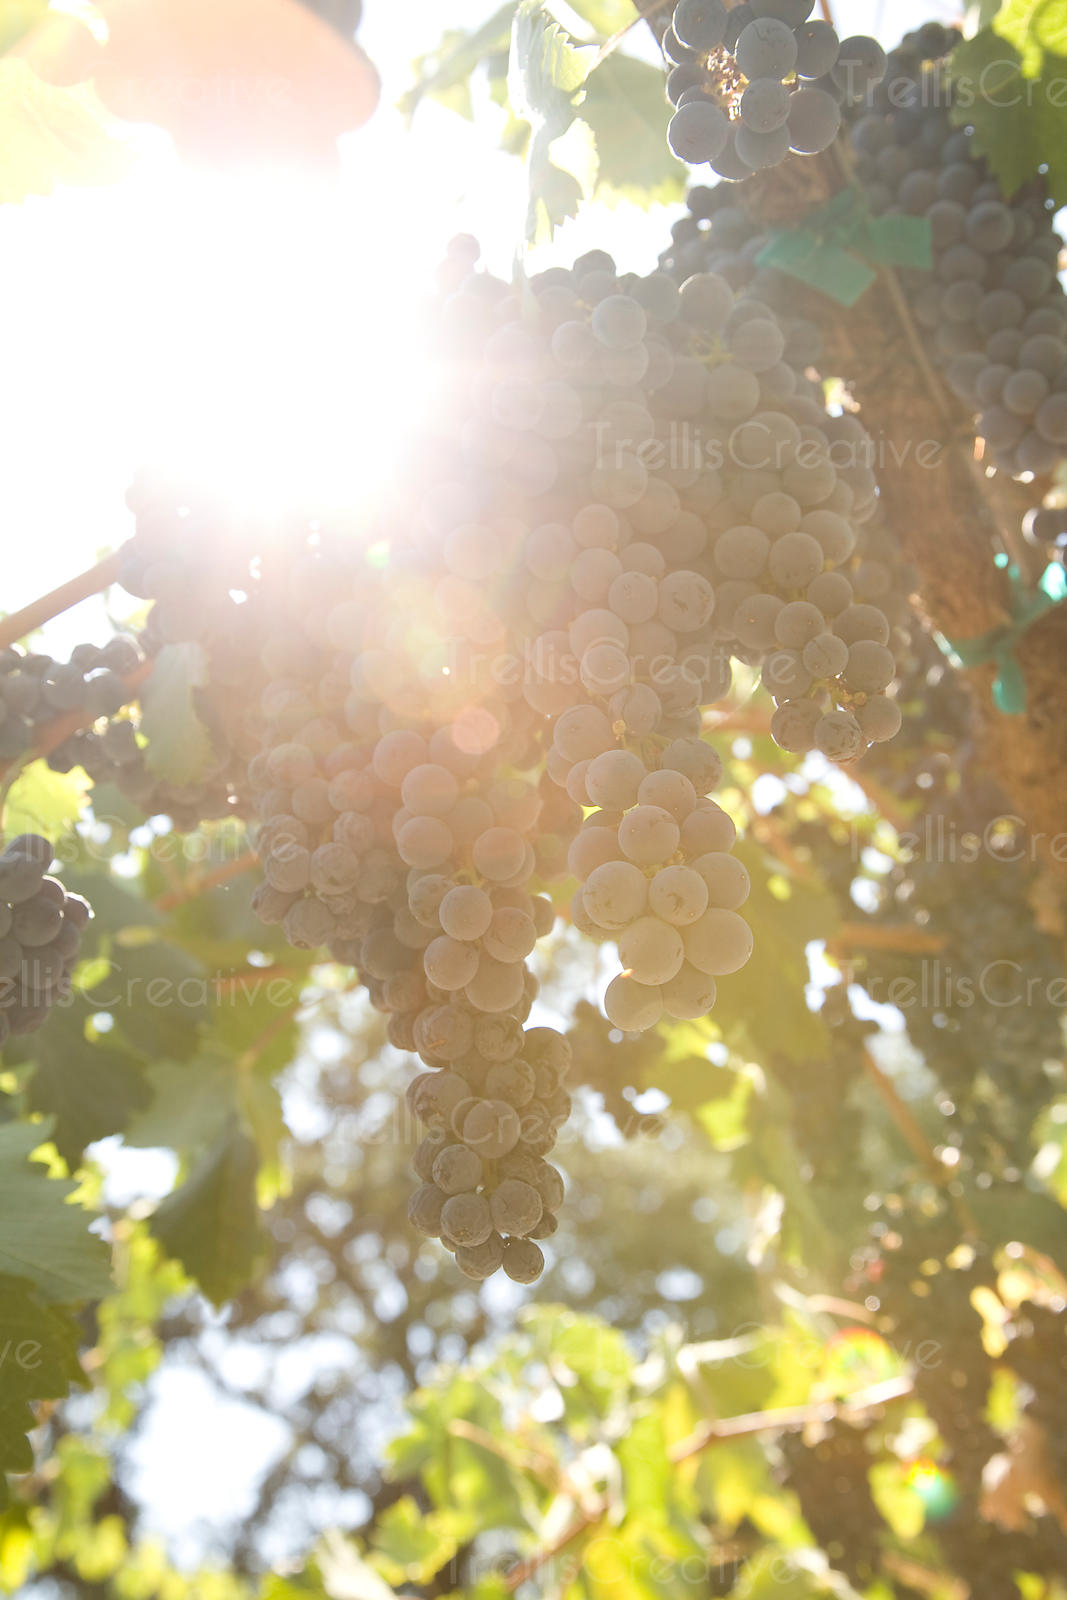 Looking up at clusters of ripe merlot wine grapes hanging on the vine